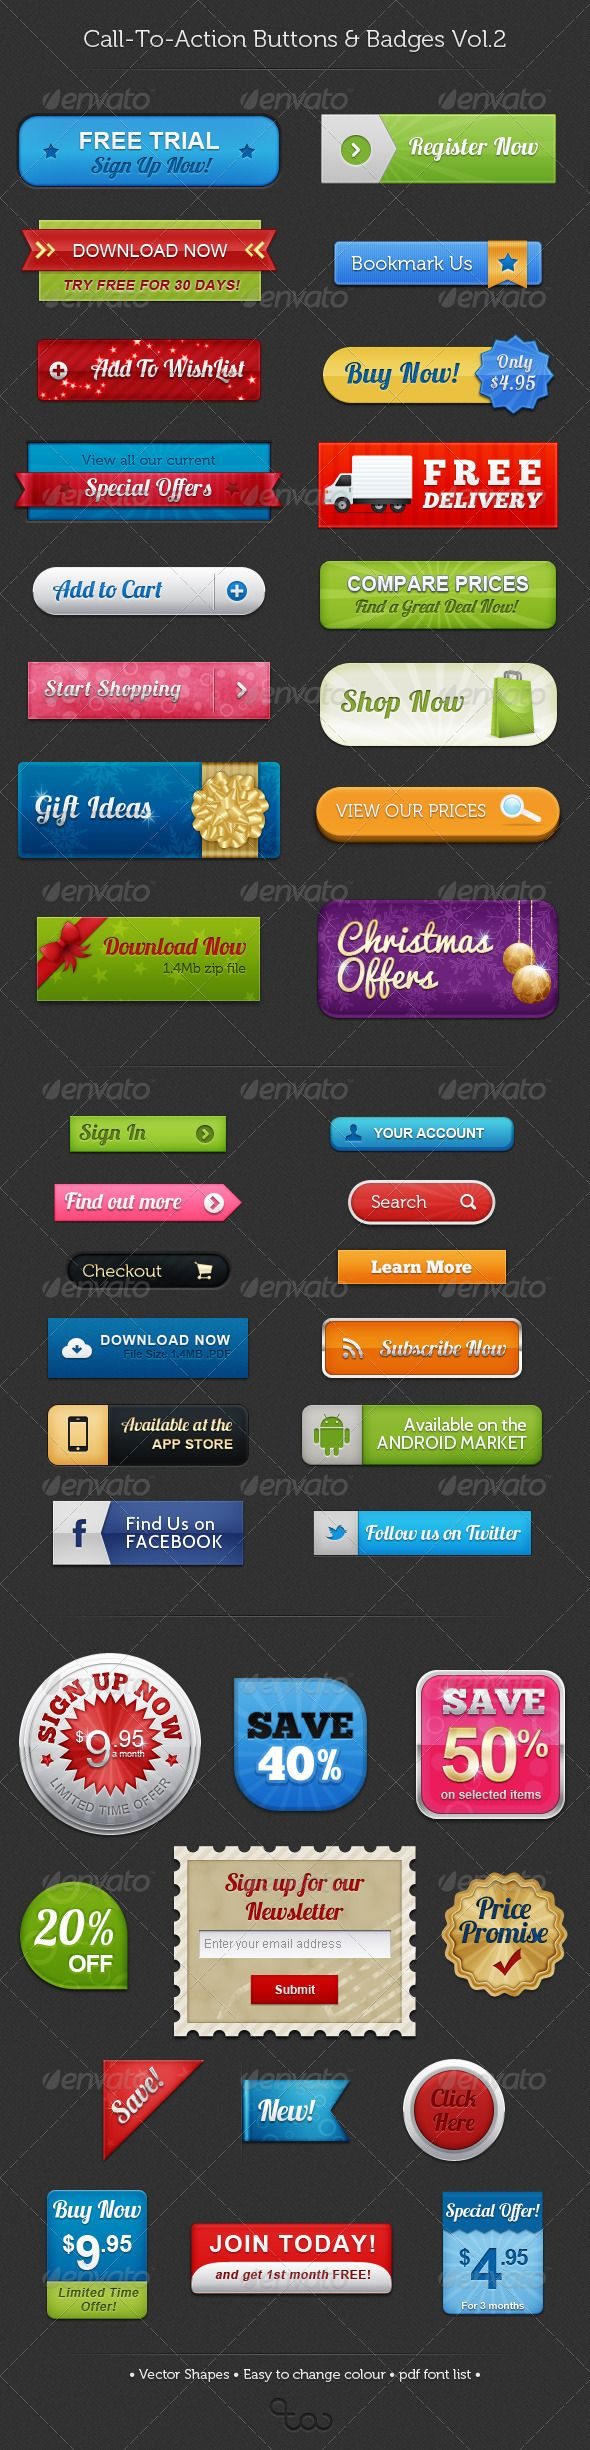 Call To Action Buttons & Badges Vol.2  #GraphicRiver        Call To Action Buttons & Badges Vol.2 A set of 40 call-to-action buttons and badges, in various styles.   99% Vector shapes  Vector smart objects used  Freely available fonts (pdf font list included)      Created: 30October12 GraphicsFilesIncluded: PhotoshopPSD HighResolution: No Layered: Yes MinimumAdobeCSVersion: CS2 PixelDimensions: 590x2450 Tags: badge #button #call-to-action #christmas #collection #glossy #set #sparkle…